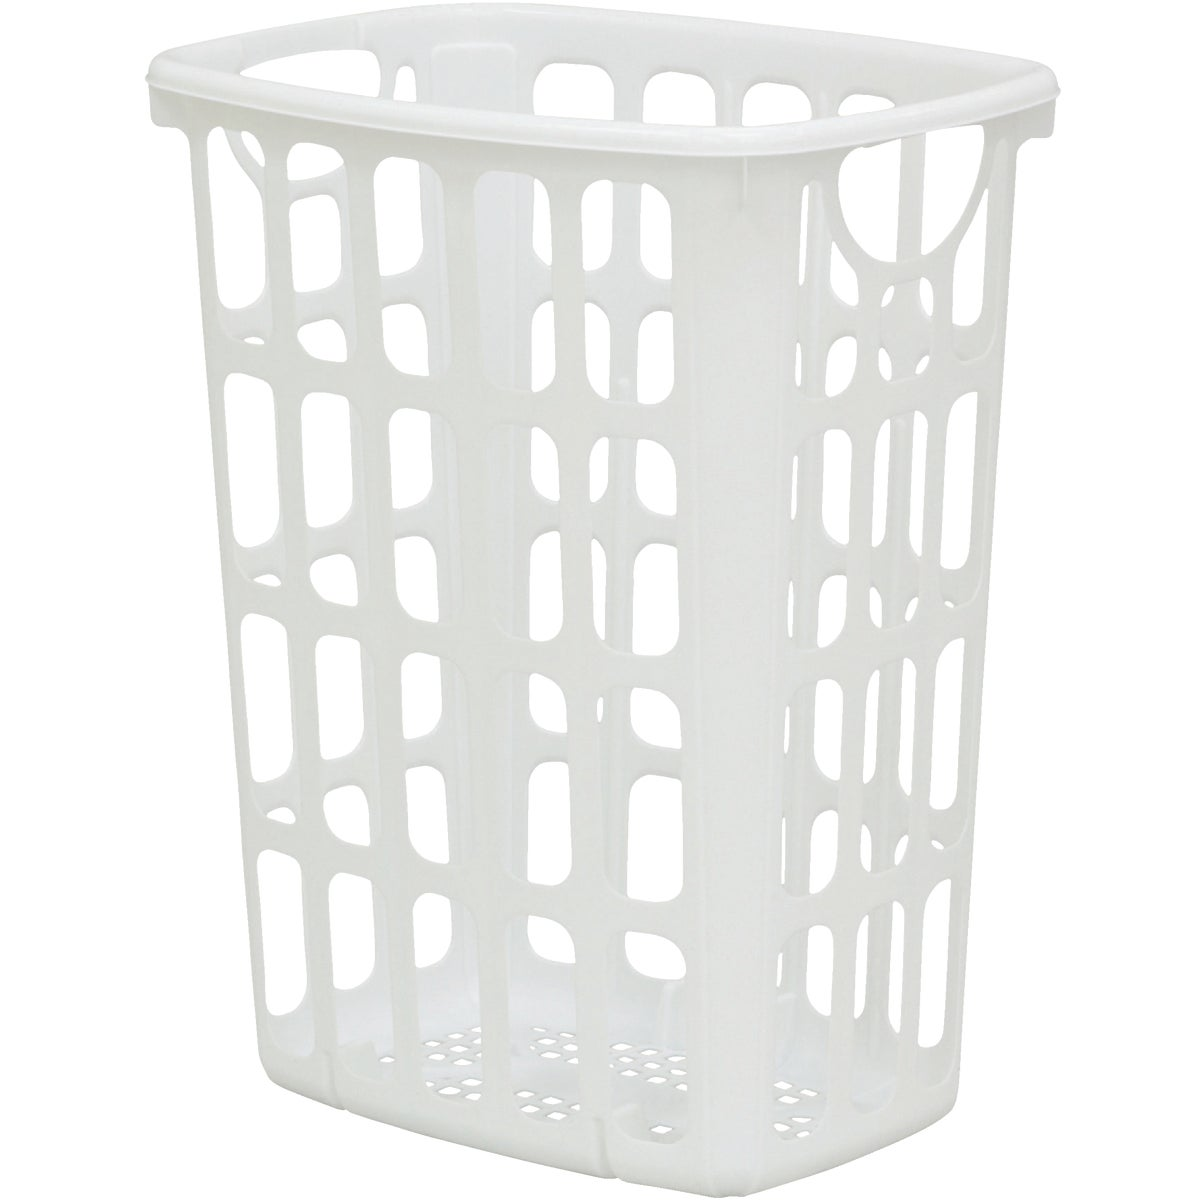 2 BSHL AIR IT OUT HAMPER